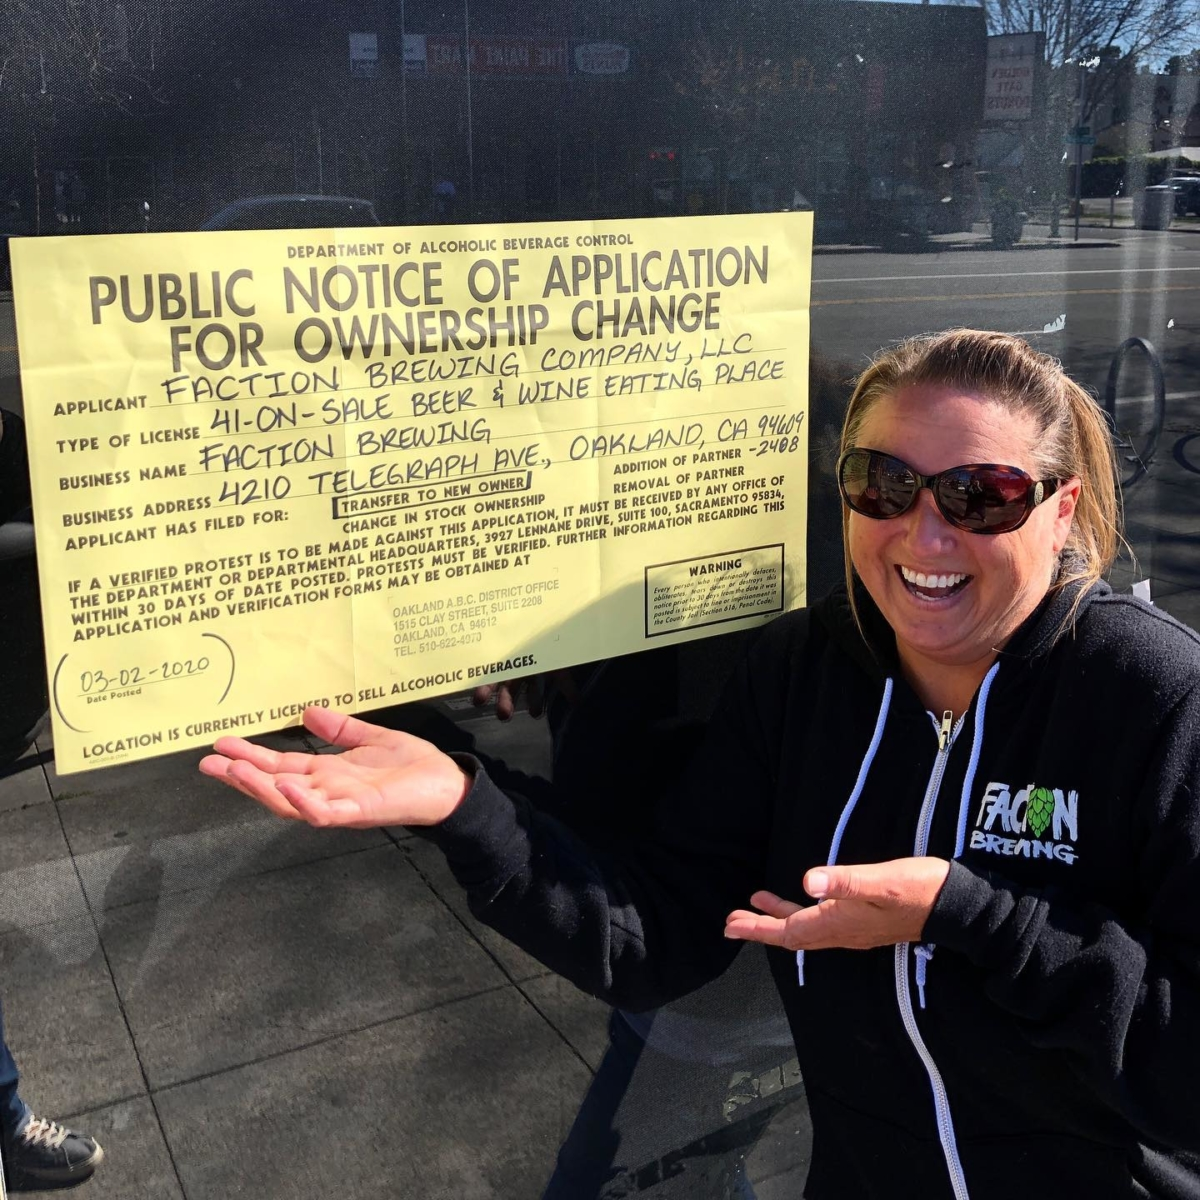 Faction Brewing co-owner Claudia Pamparana poses in front of the public notice at 4210 Telegraph Ave., the site of Faction Brewing's next tasting room.